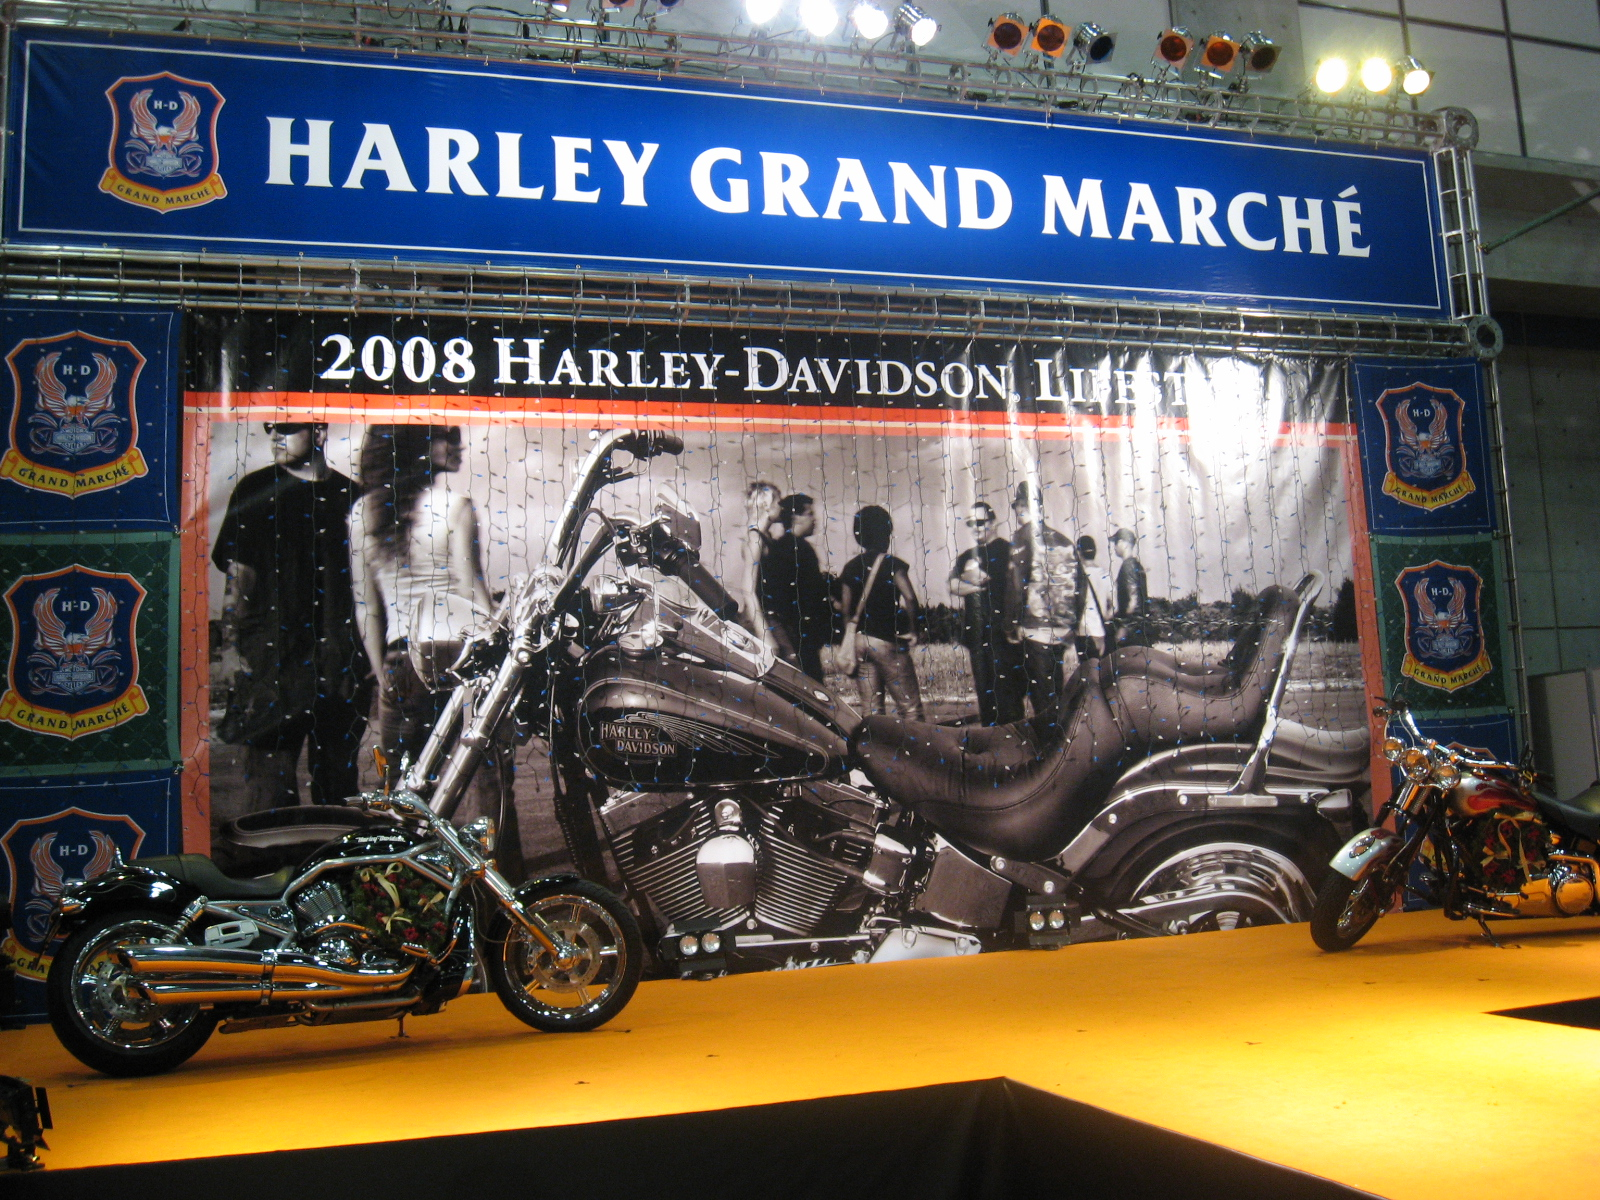 Harley Grand Marche